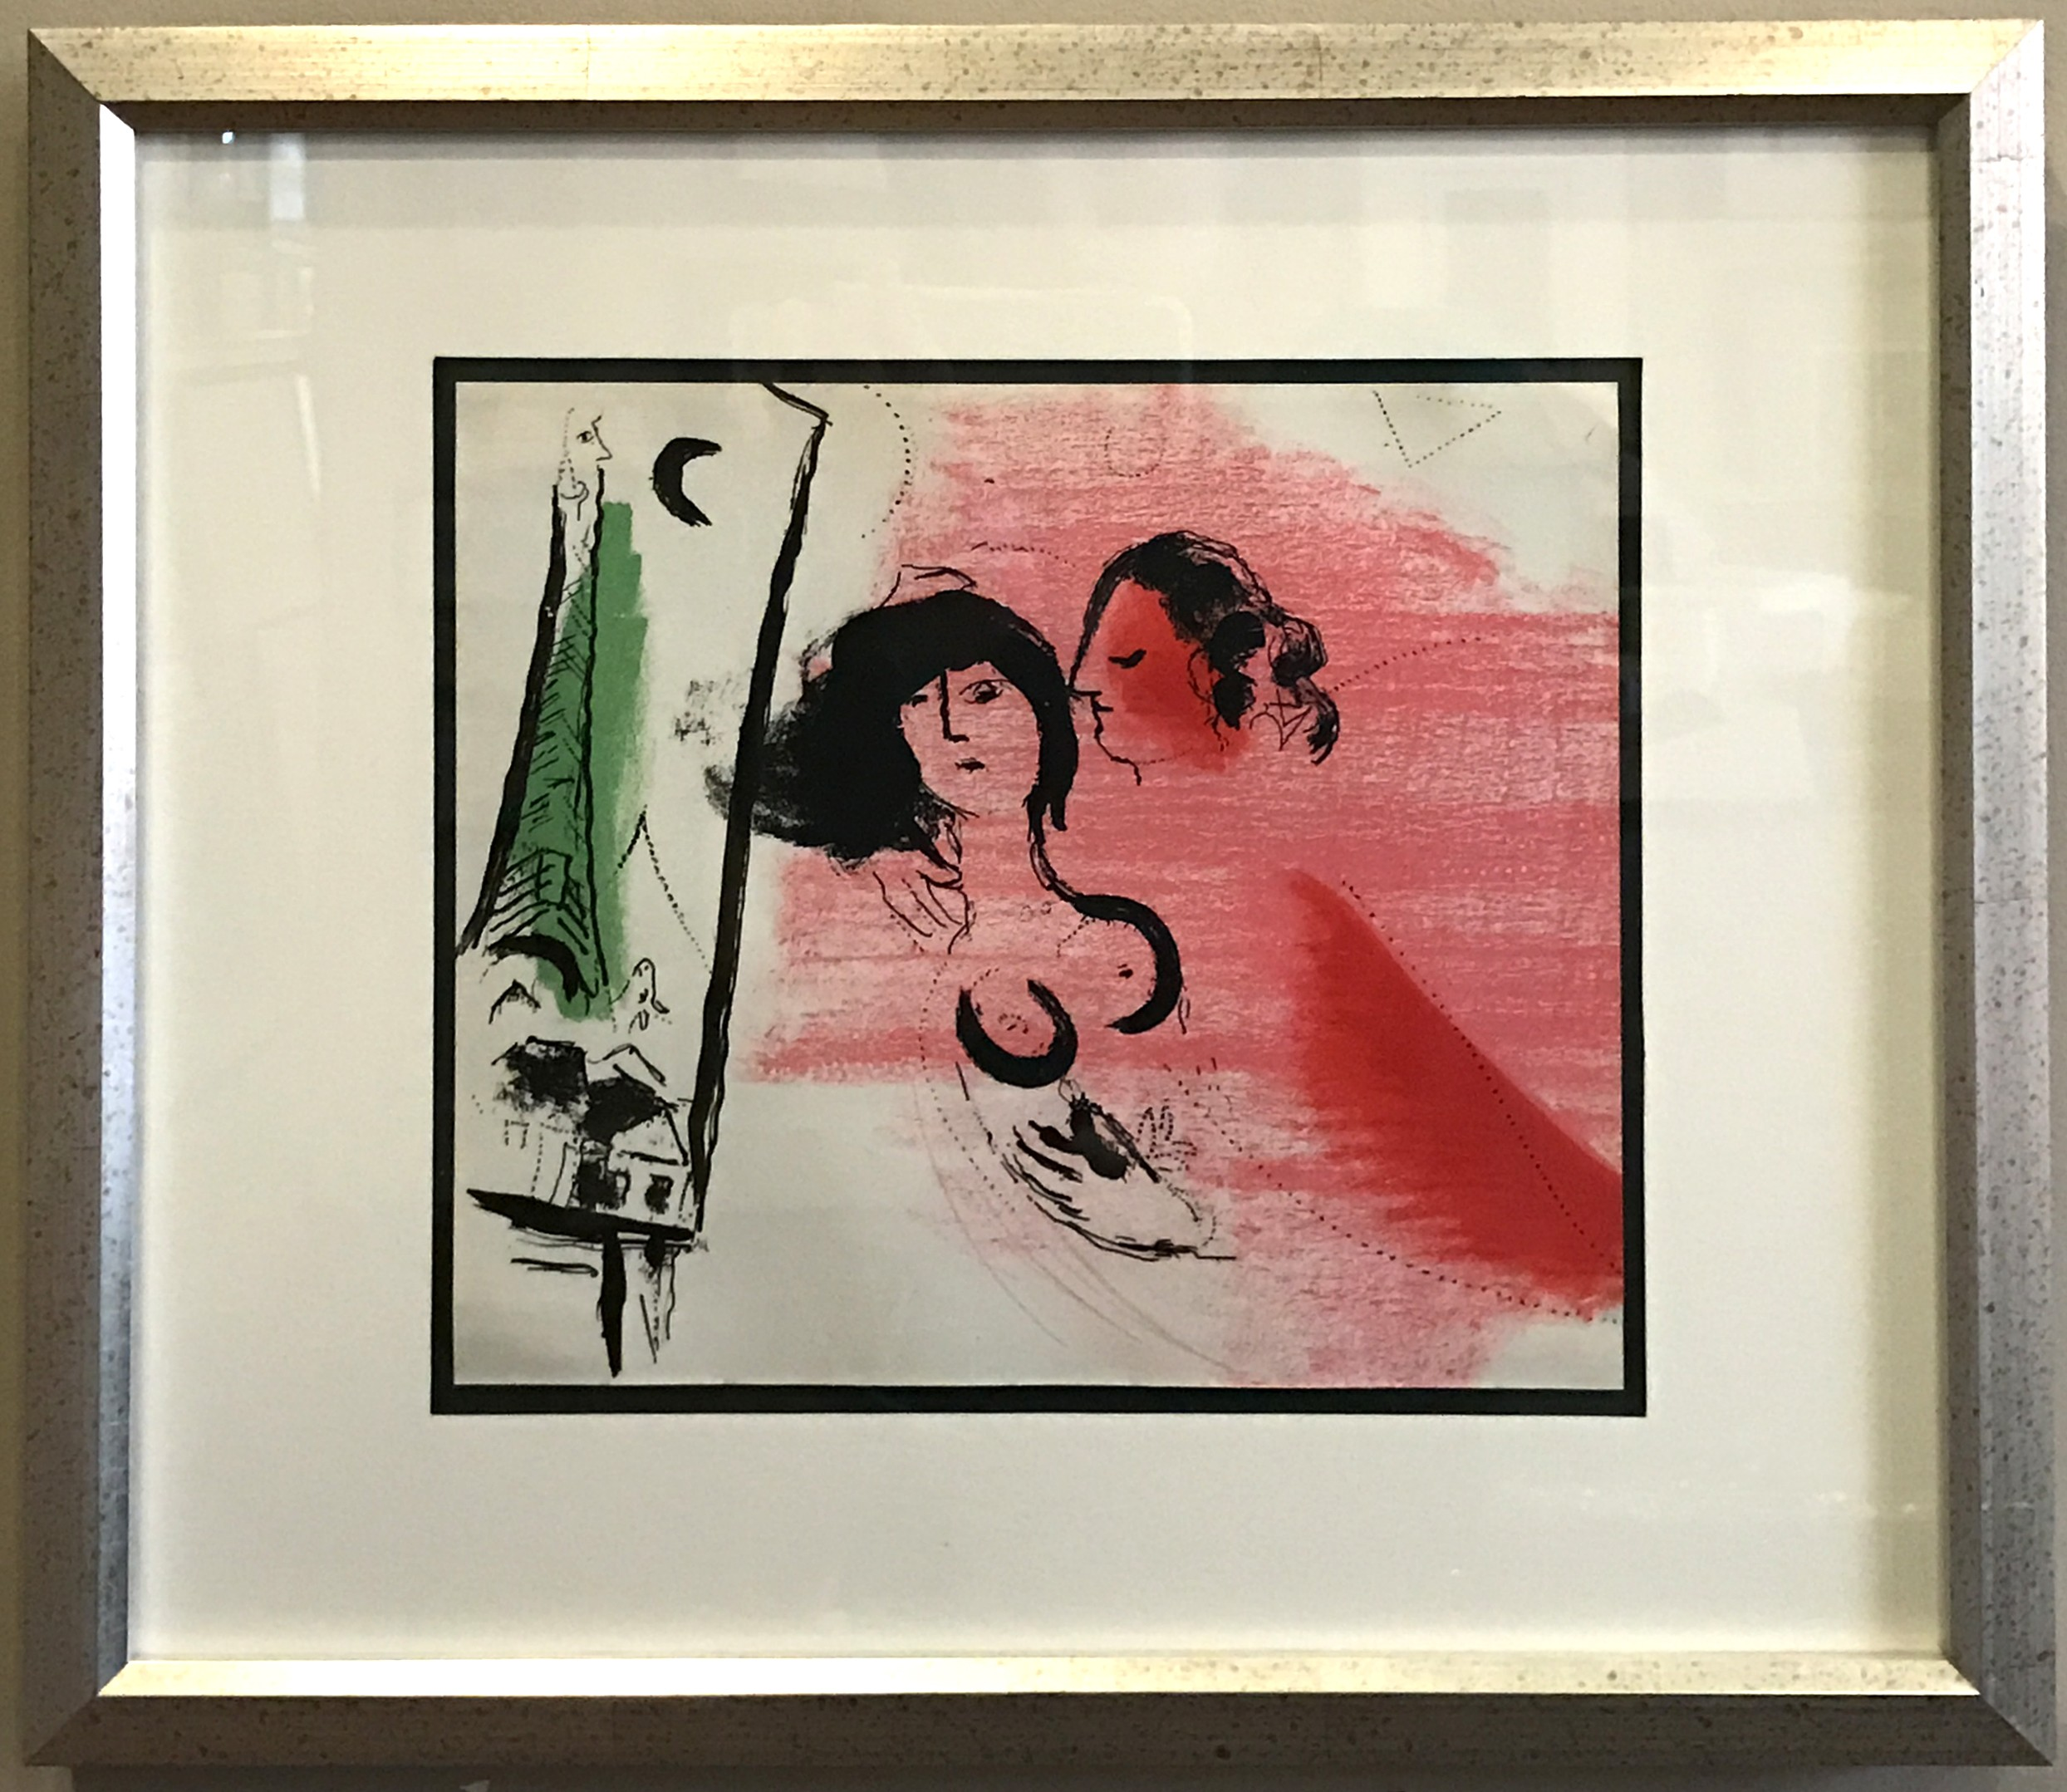 The green eiffel tower from chagall georgetown frame shoppe marc chagall the green eiffel tower jeuxipadfo Images